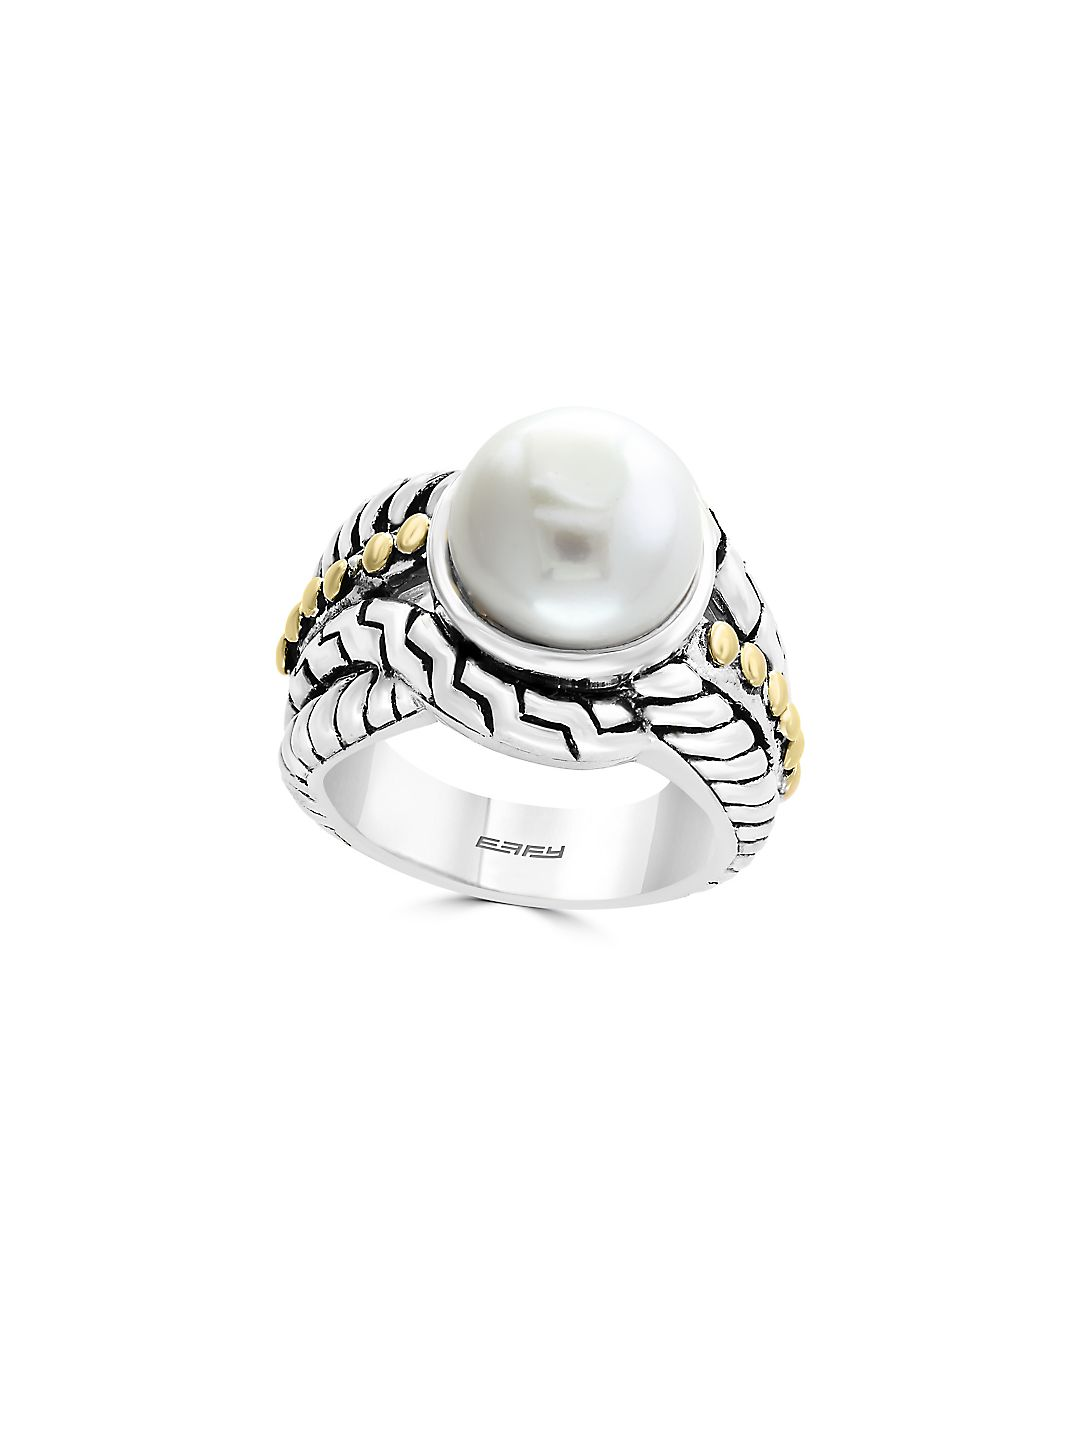 11MM Freshwater Pearl and Sterling Silver Ring